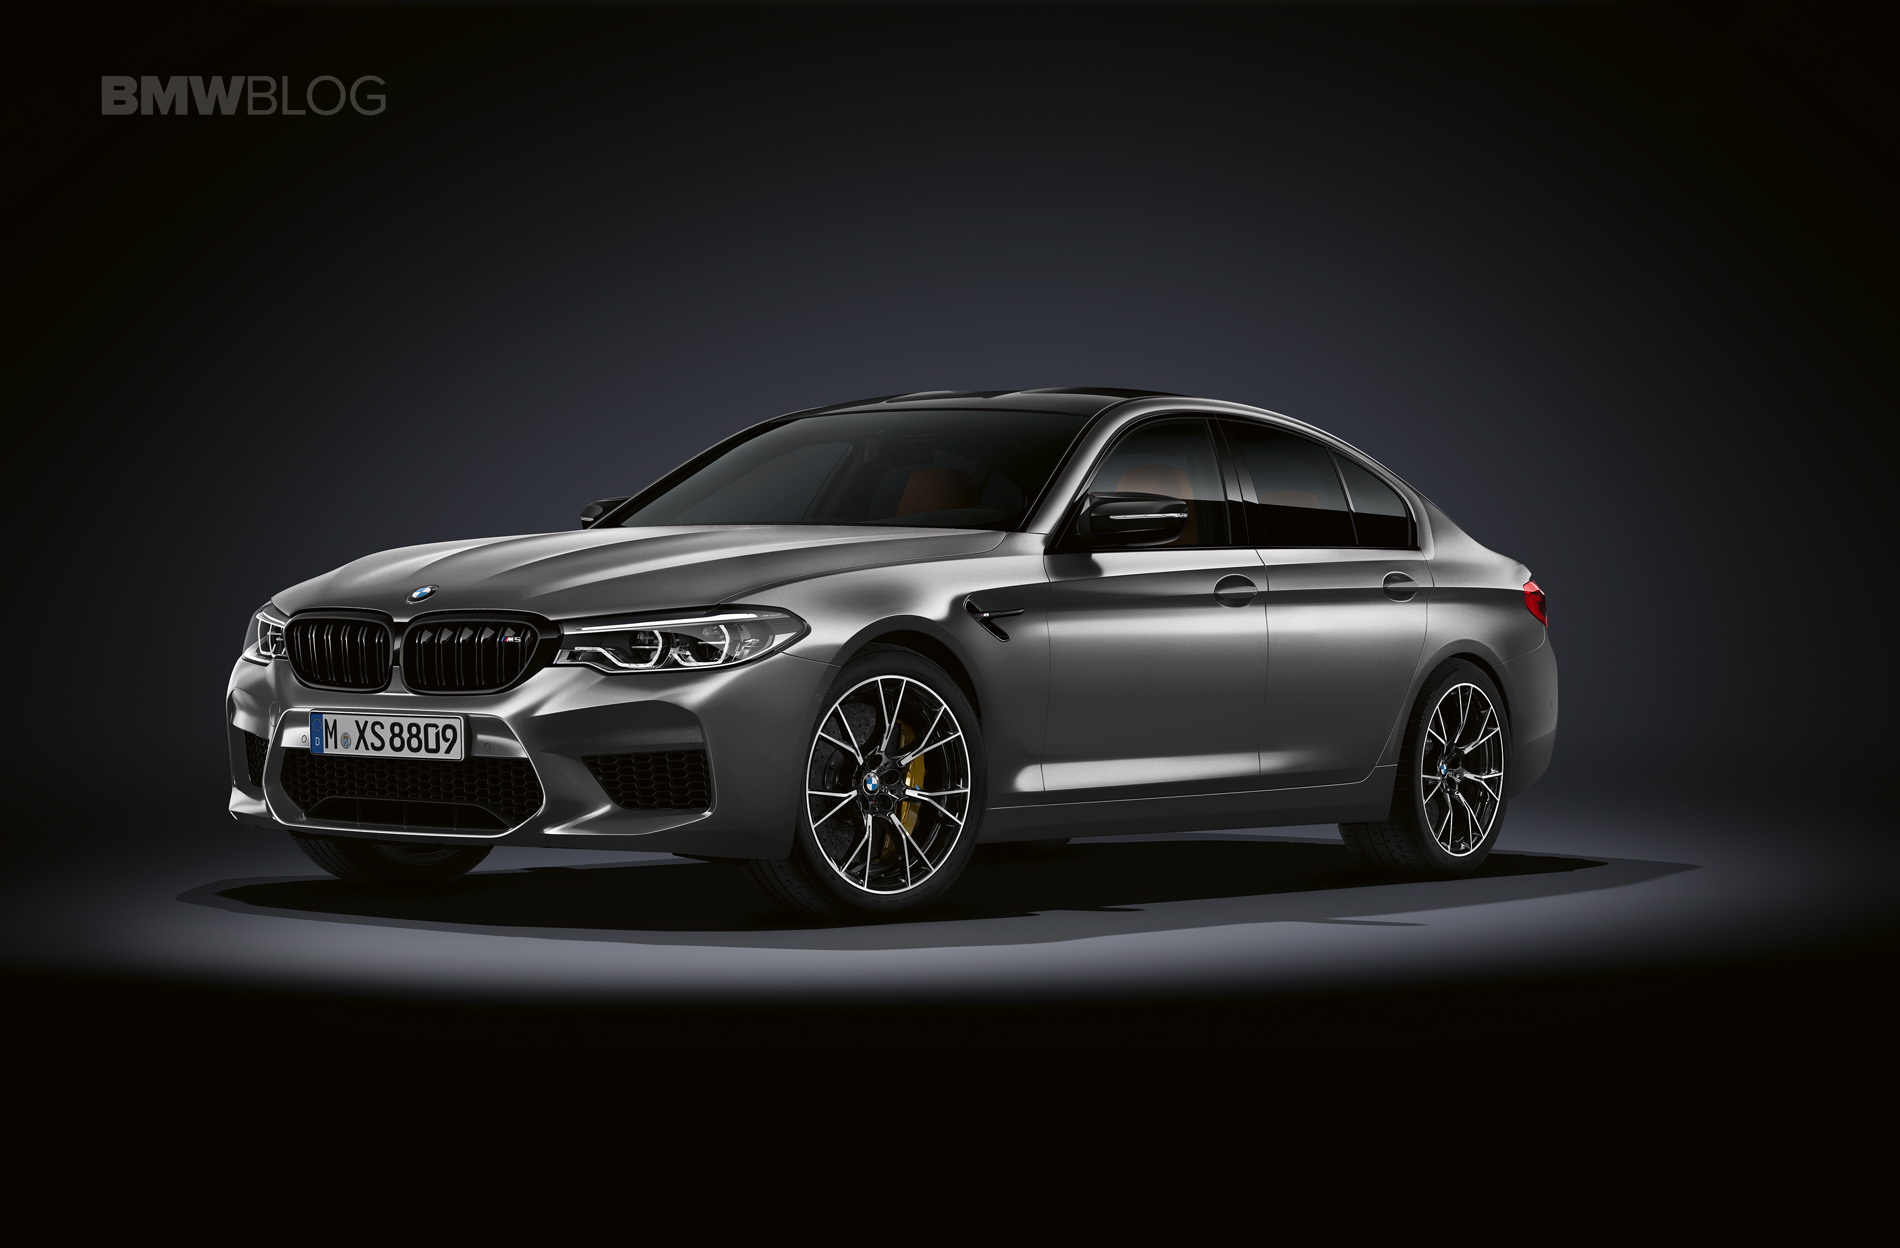 2018 BMW F90 M5 Competition 07